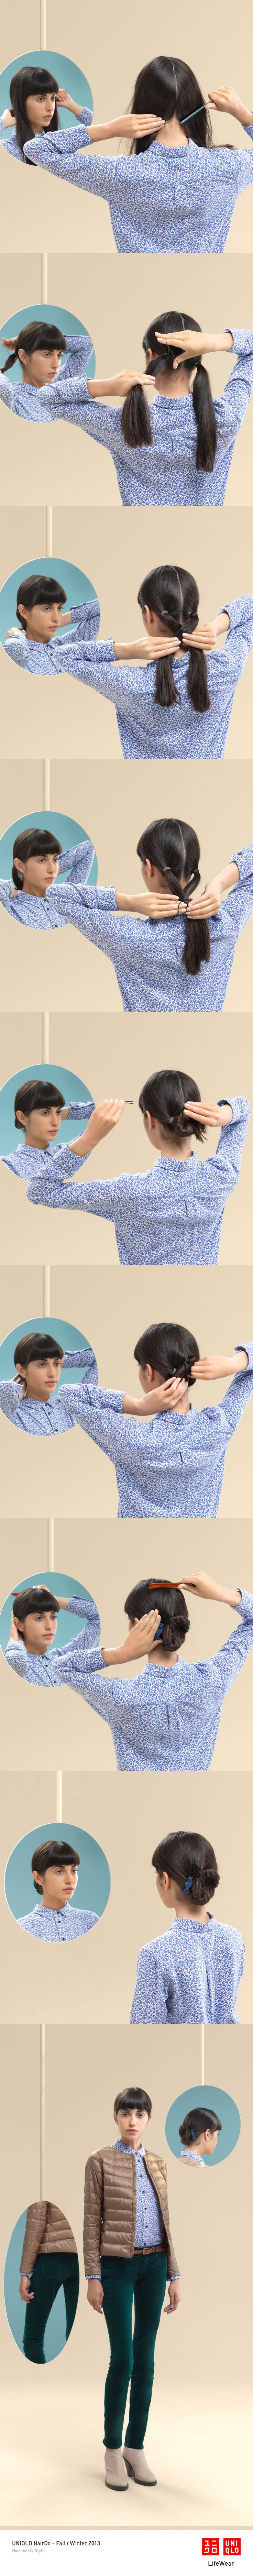 """""""THE UP TAIL"""" : Wear our ultra light down jacket with this modern take on a childhood favorite. Click the image for DIY instructions! #PigTails #Hair #Hairstyle #UNIQLO #DIY #HairDo"""